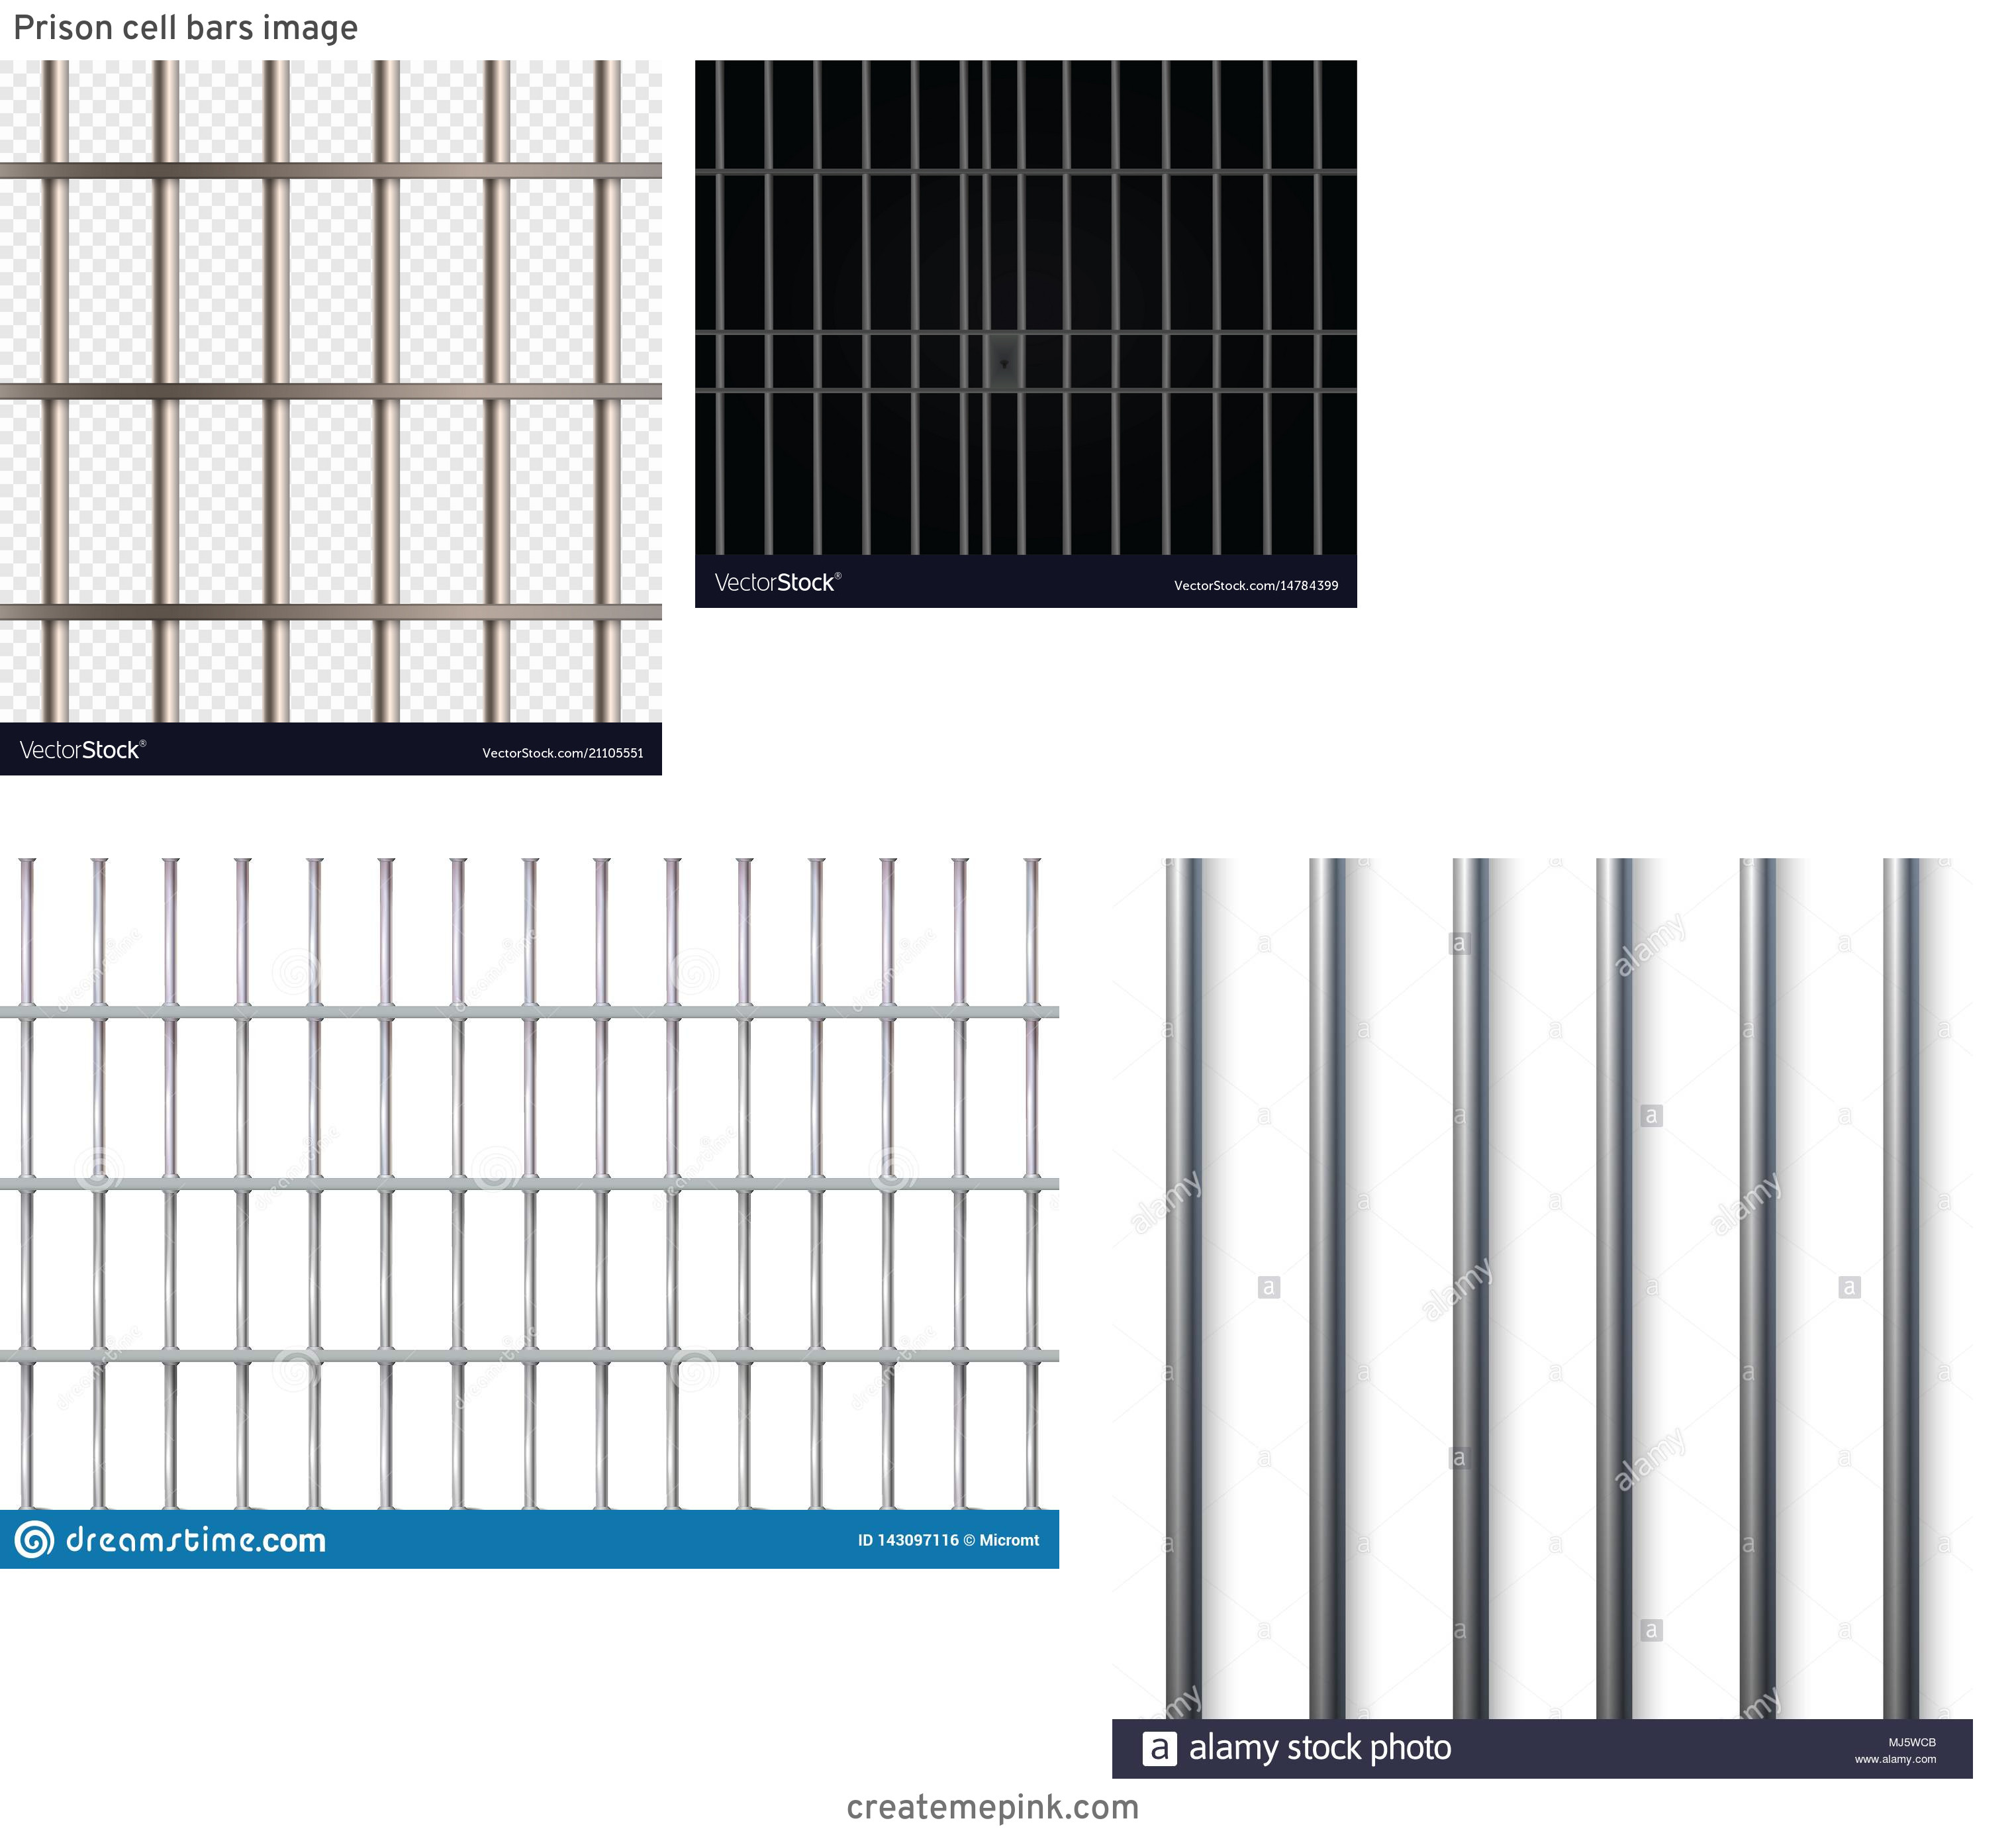 Jail Cell Vector: Prison Cell Bars Image